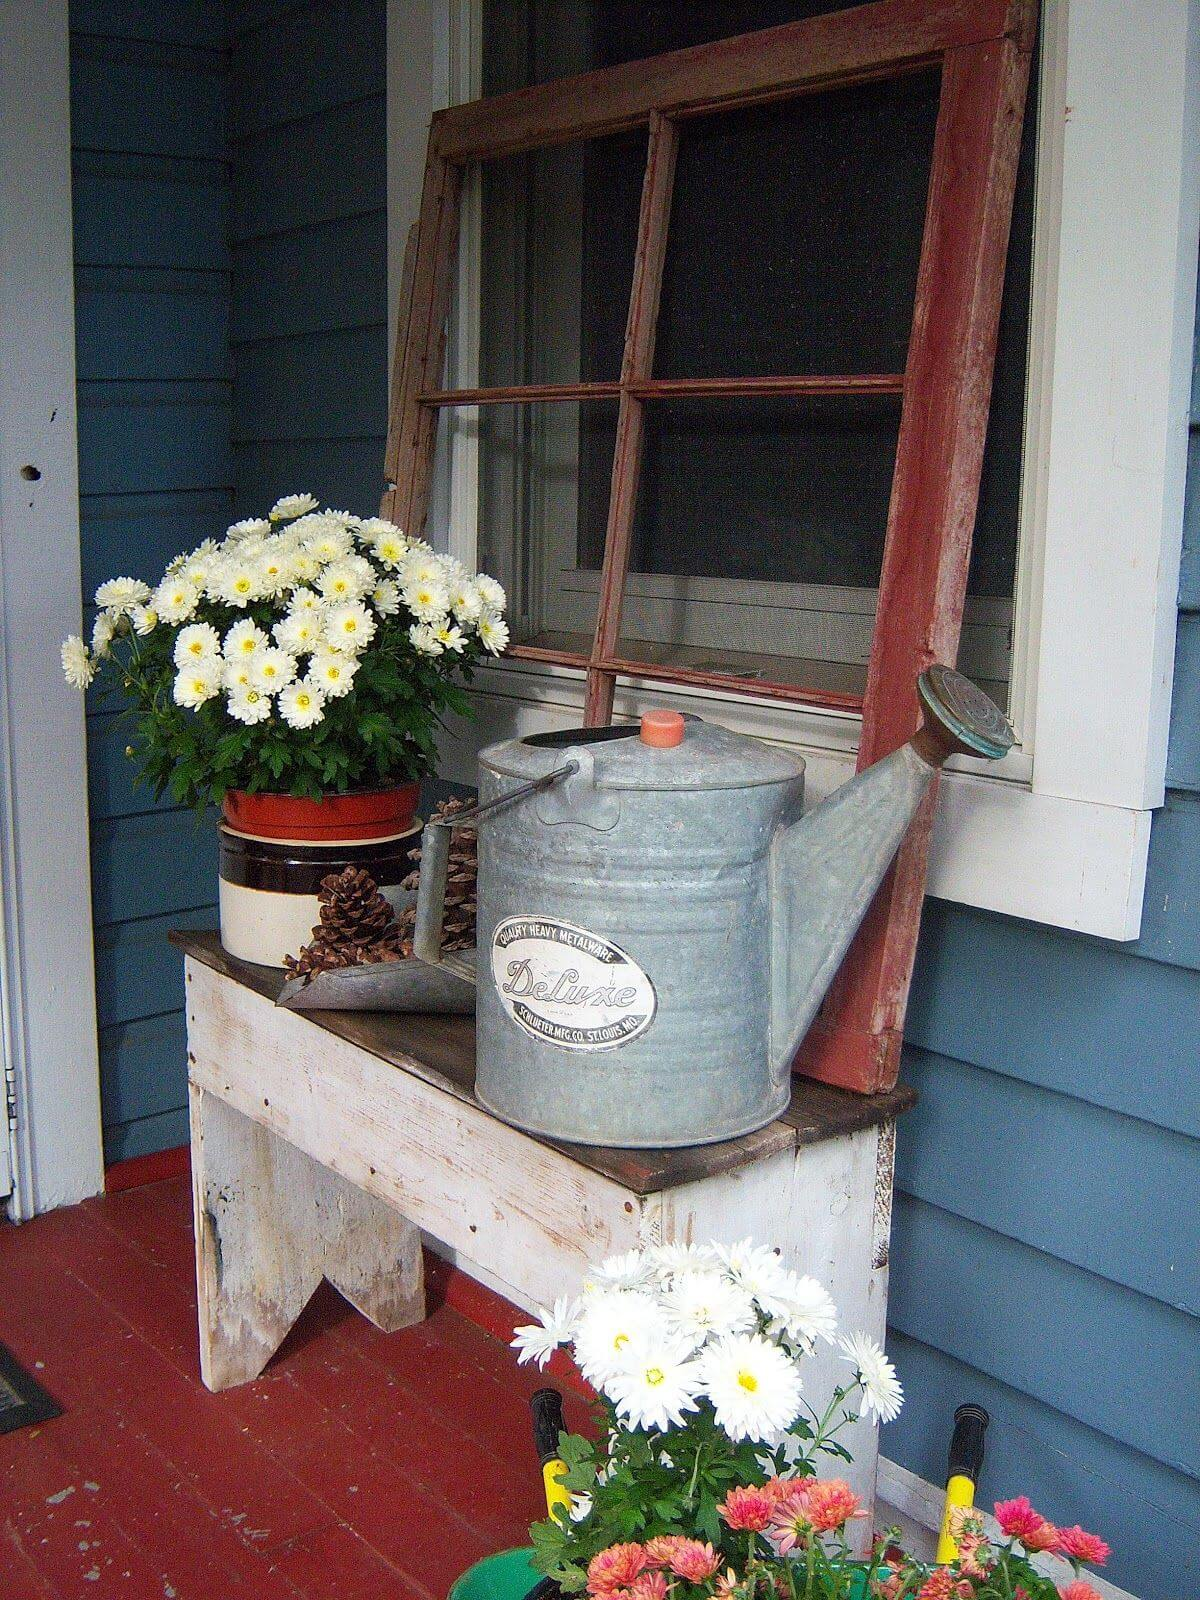 Window Pane and Watering Can Porch Display